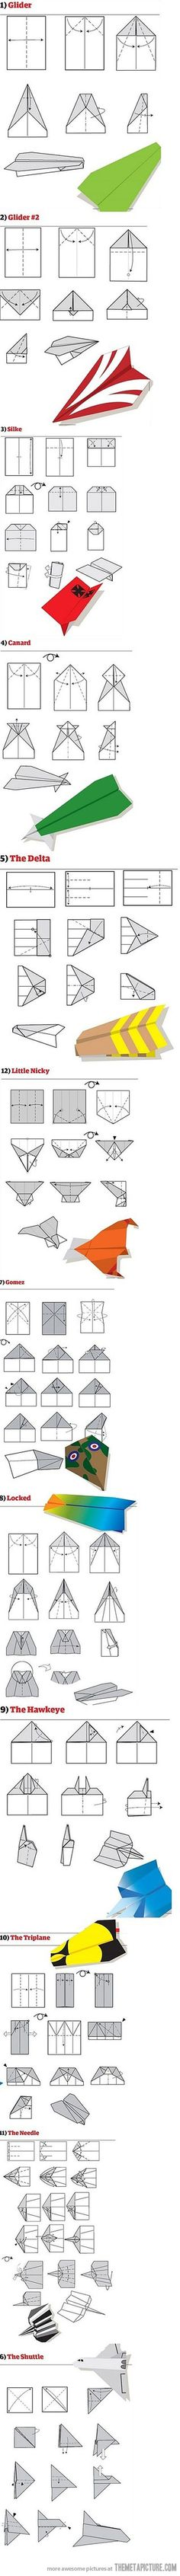 Pinterest 159 Origami Images Art For Toddlers Kids And 3d Swan Diagram Http Howtoorigamicom Origamiswanhtml Paper Airplanes